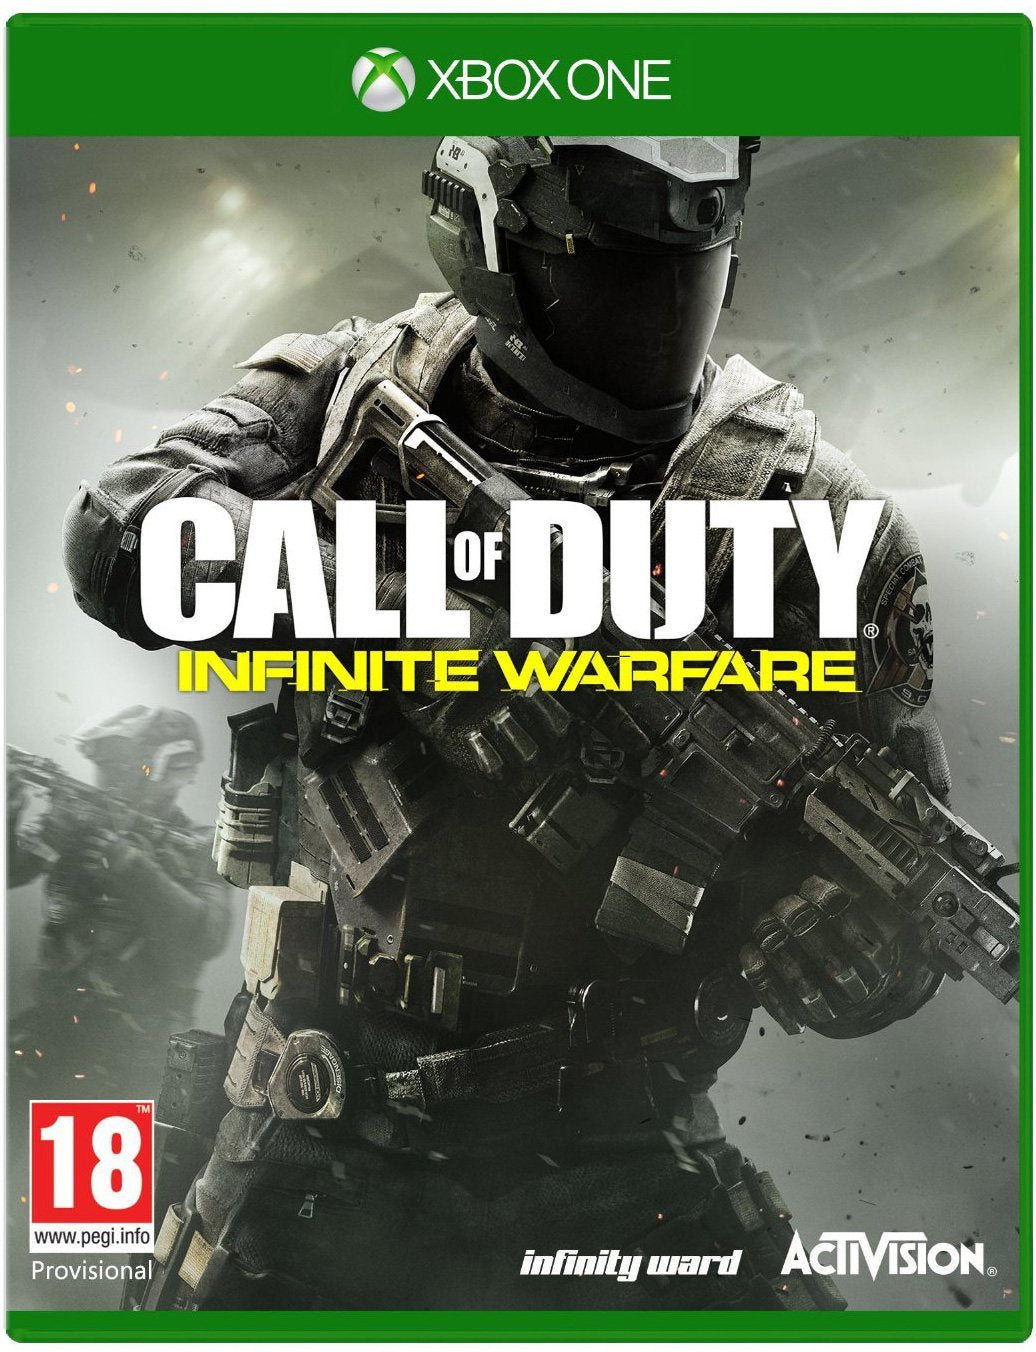 CALL OF DUTY: INFINITE WARFARE - Includes Terminal Map DLC